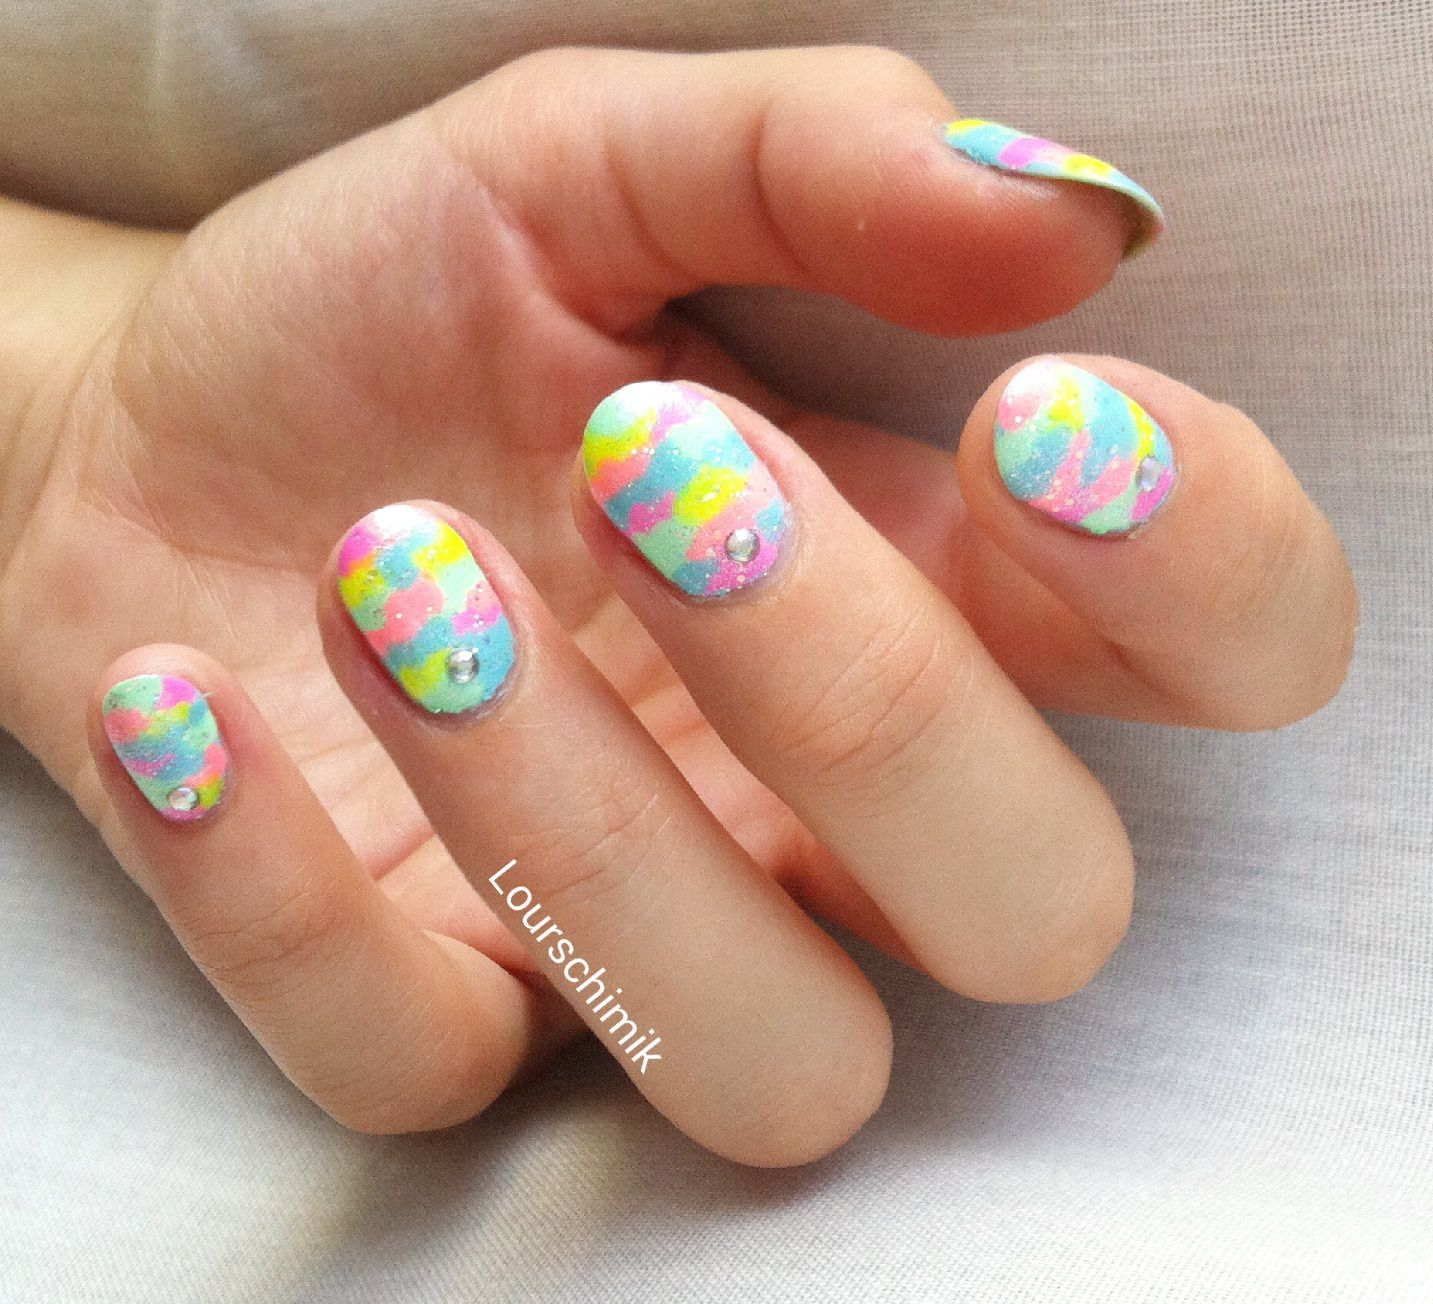 nailstorming army nails